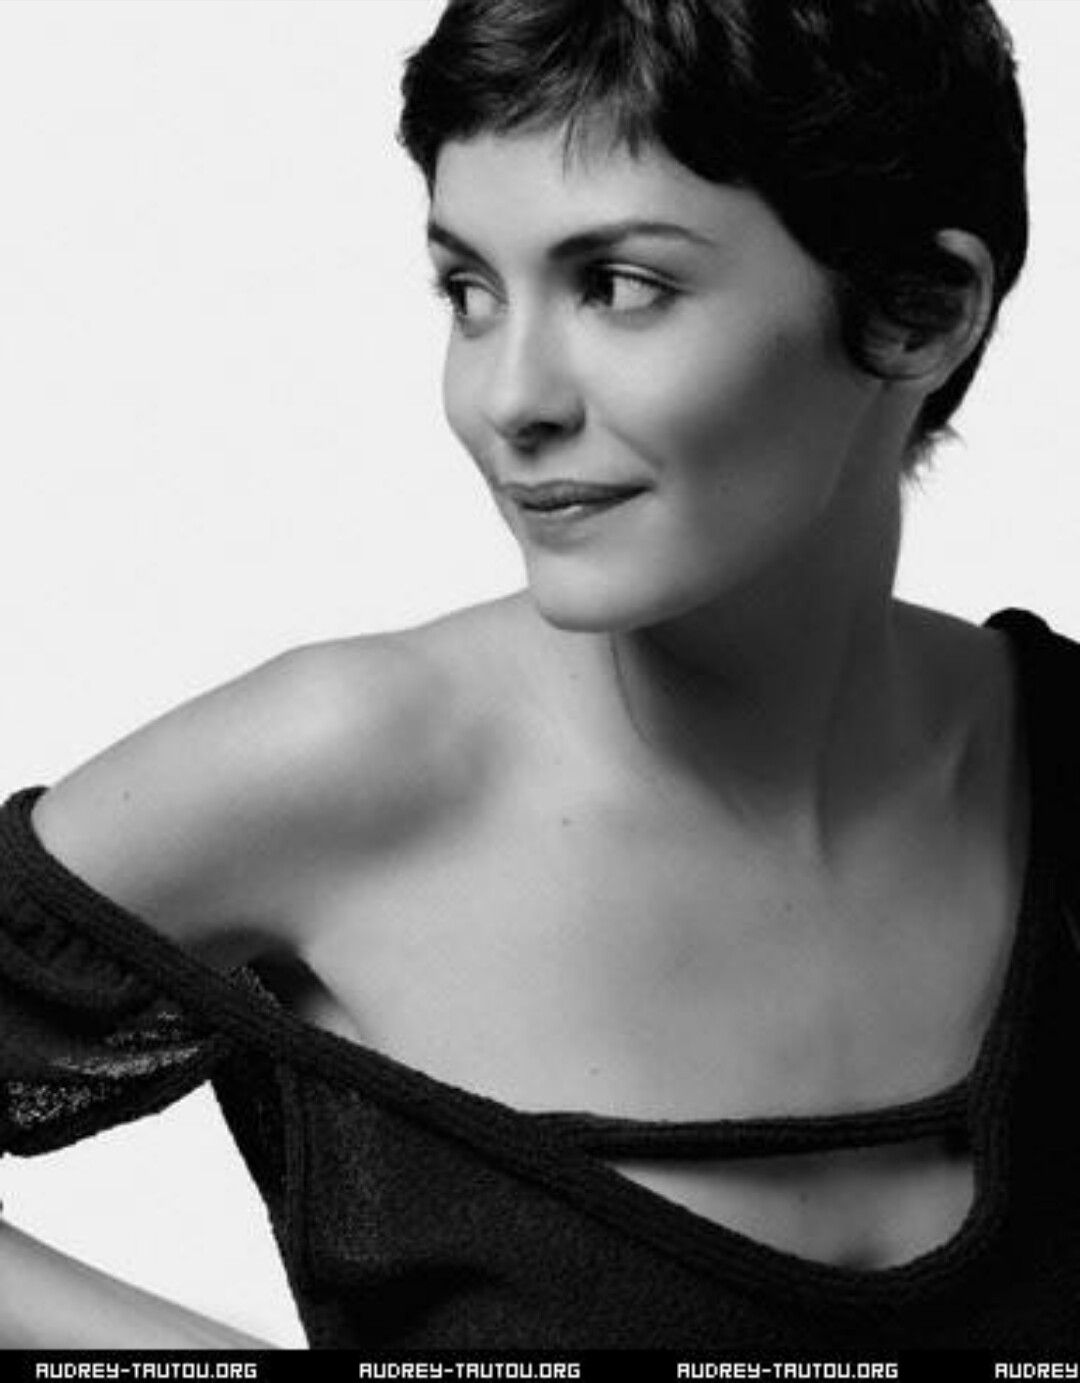 Best Hairstyle For Women Audrey Tautou Pixies And Short Hair